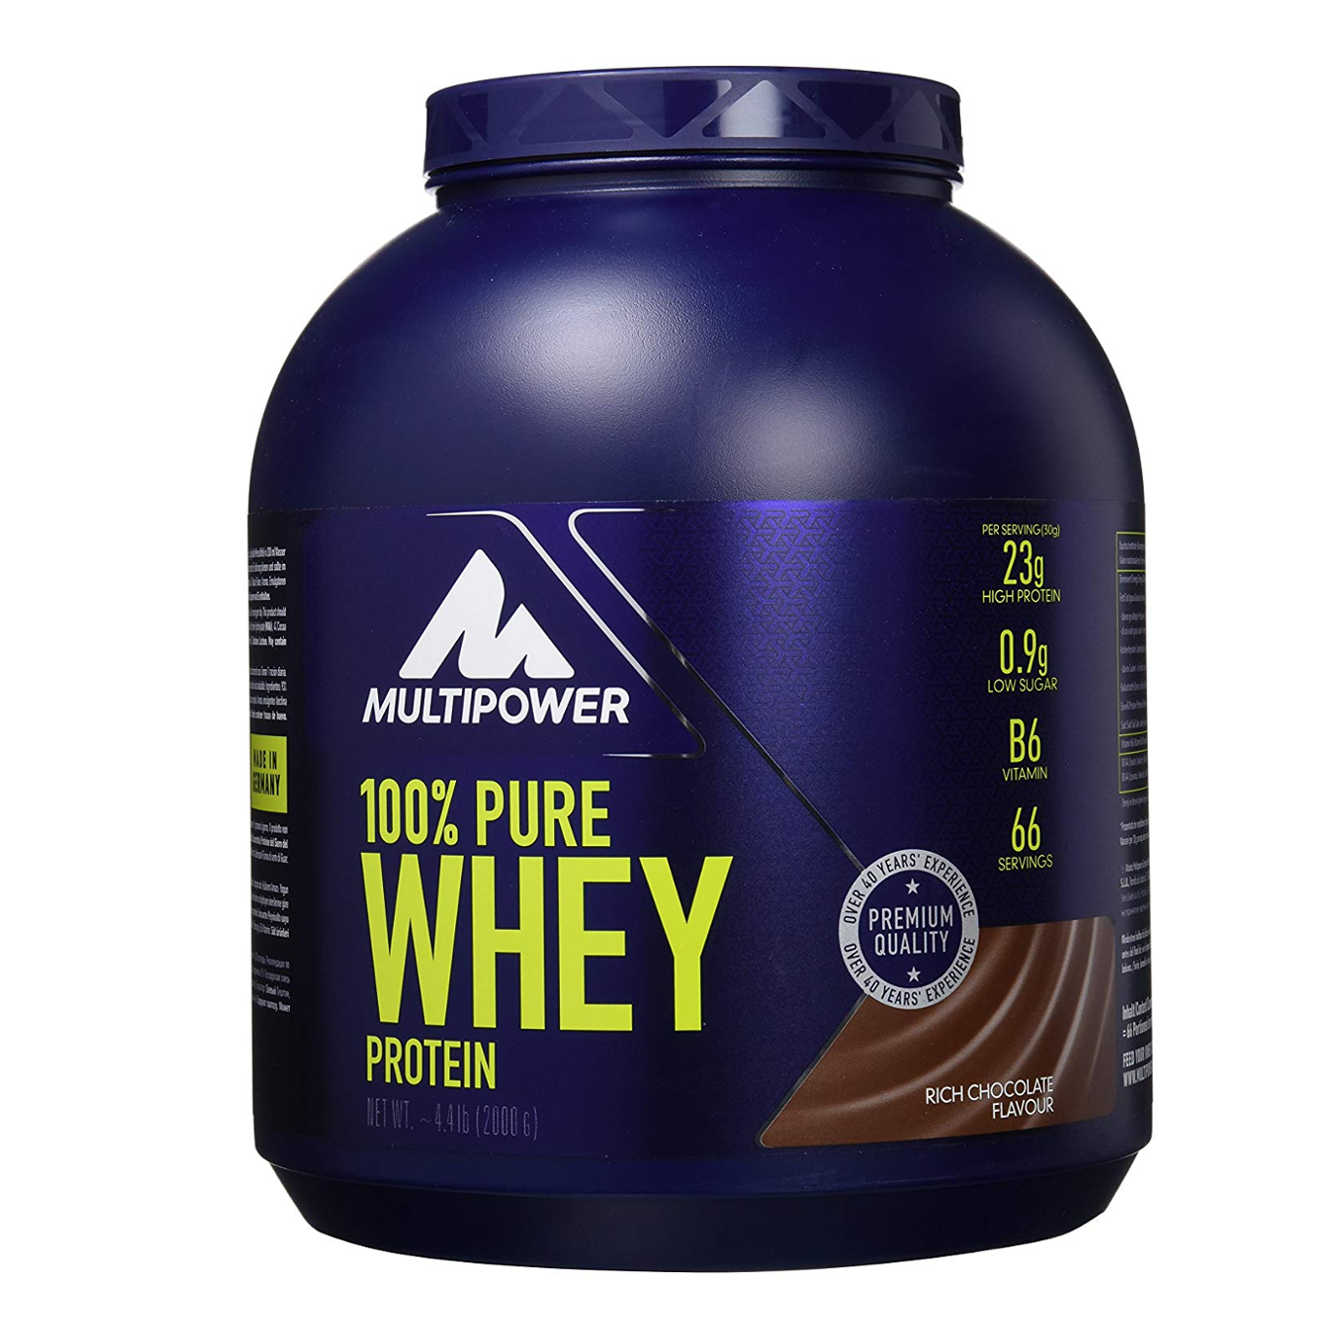 158b87b391665 100% PURE WHEY PROTEIN - 2Kg - Multipower